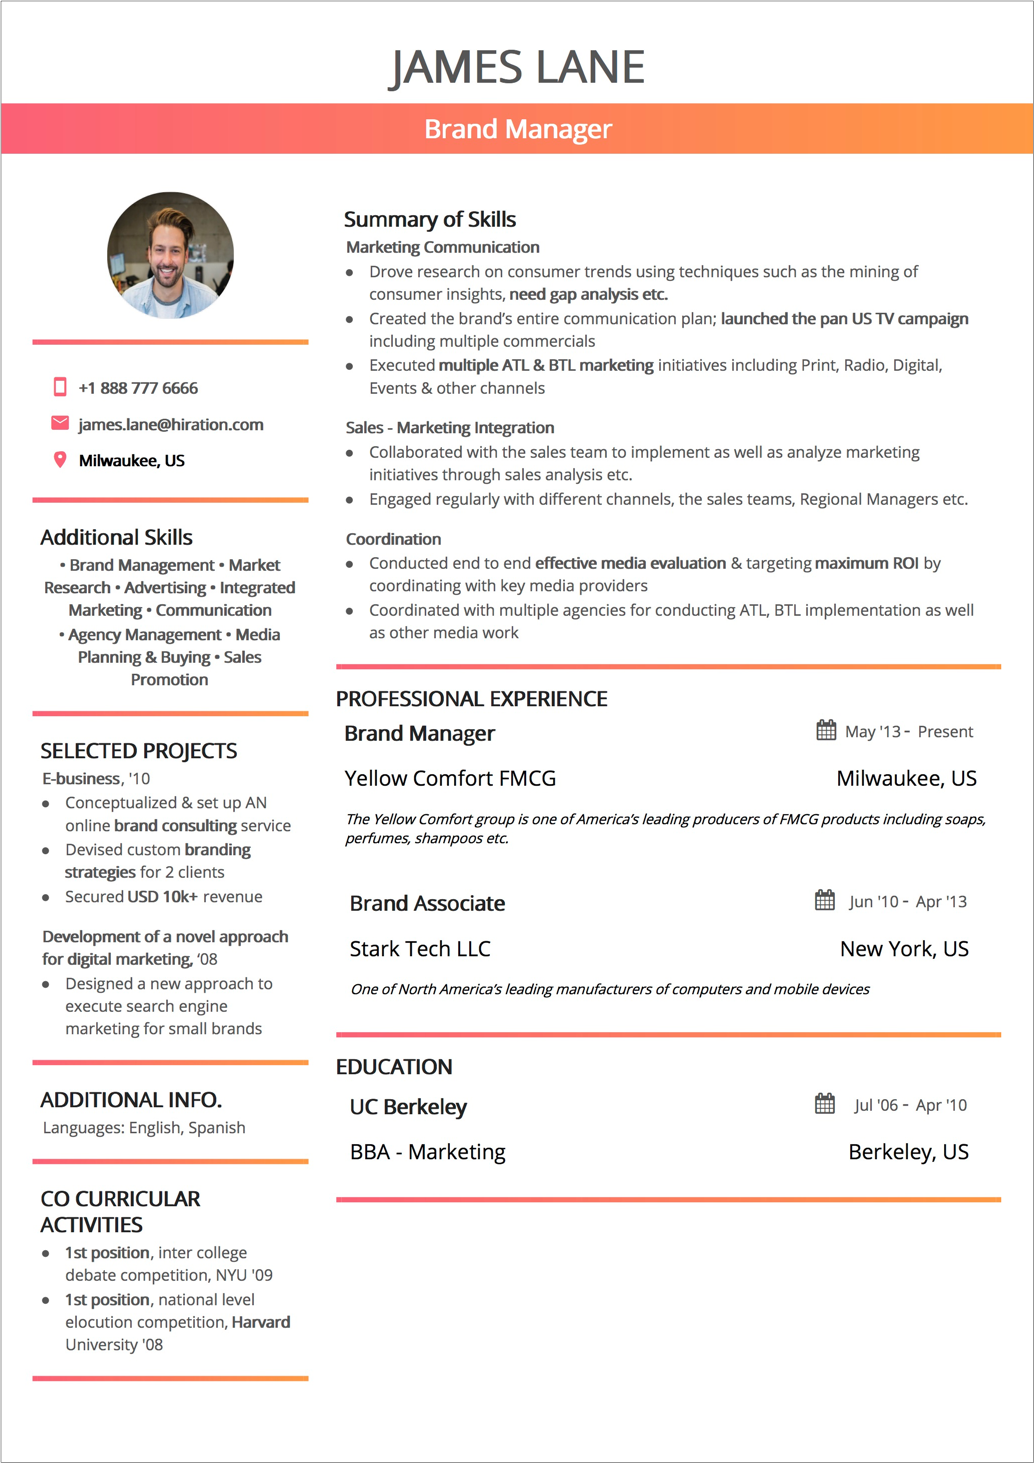 Functional Resume The 2019 Guide To Functional Resumes